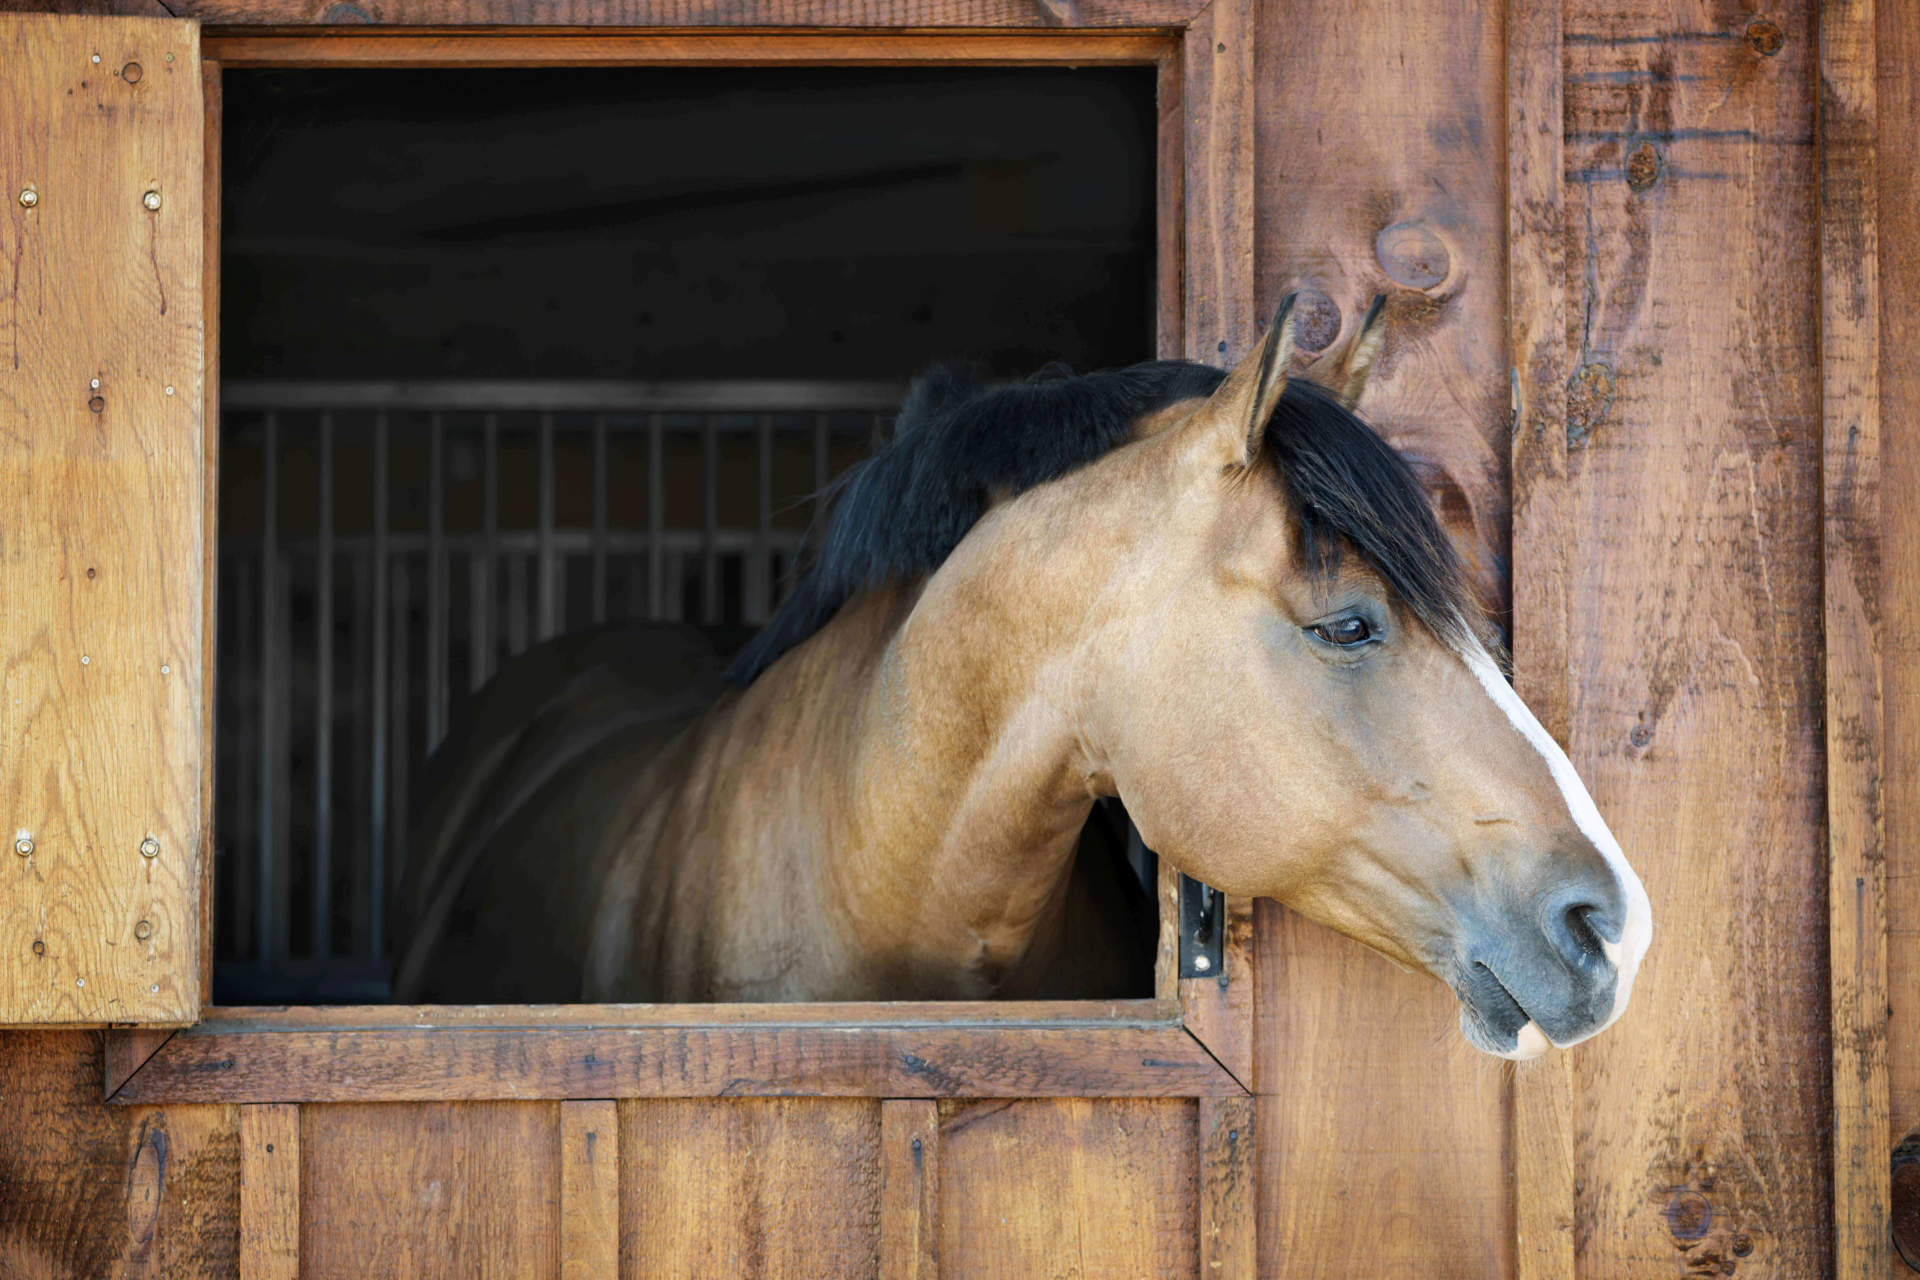 Horse sticking head out of barn window